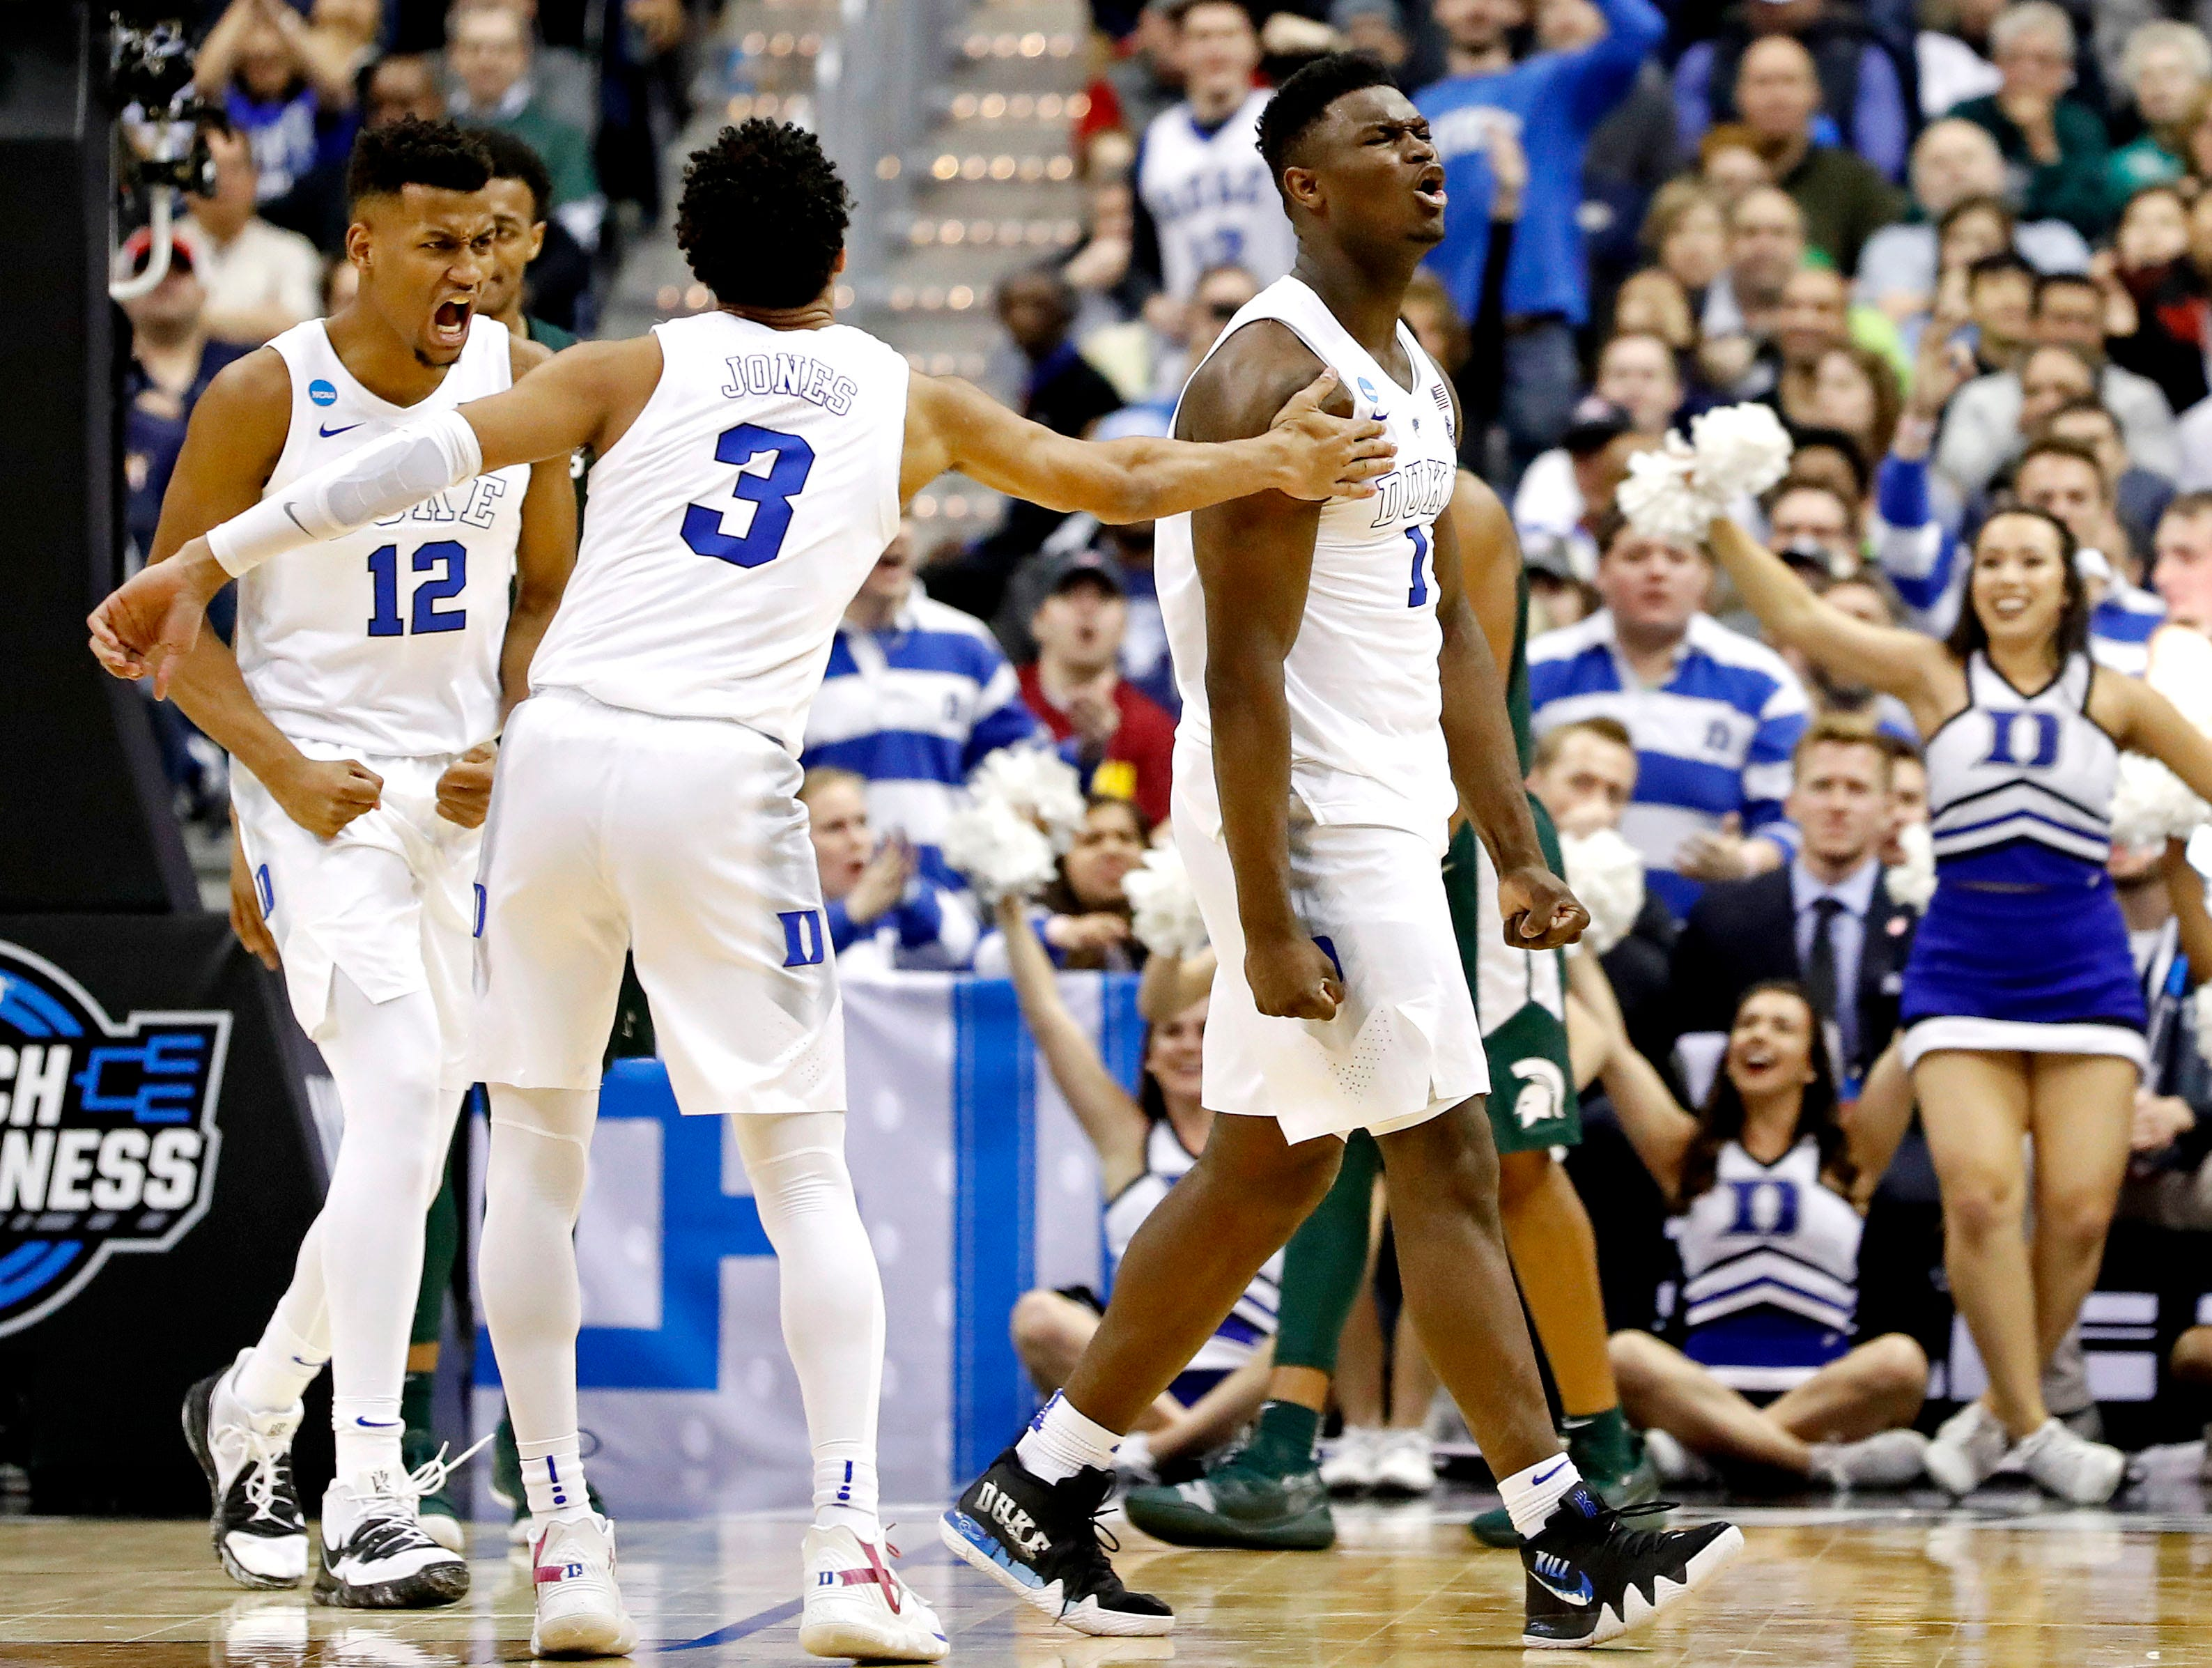 Mar 31, 2019; Washington, DC, USA; Duke Blue Devils forward Zion Williamson (1) reacts after a play during the second half against the Michigan State Spartans in the championship game of the east regional of the 2019 NCAA Tournament at Capital One Arena. Mandatory Credit: Geoff Burke-USA TODAY Sports